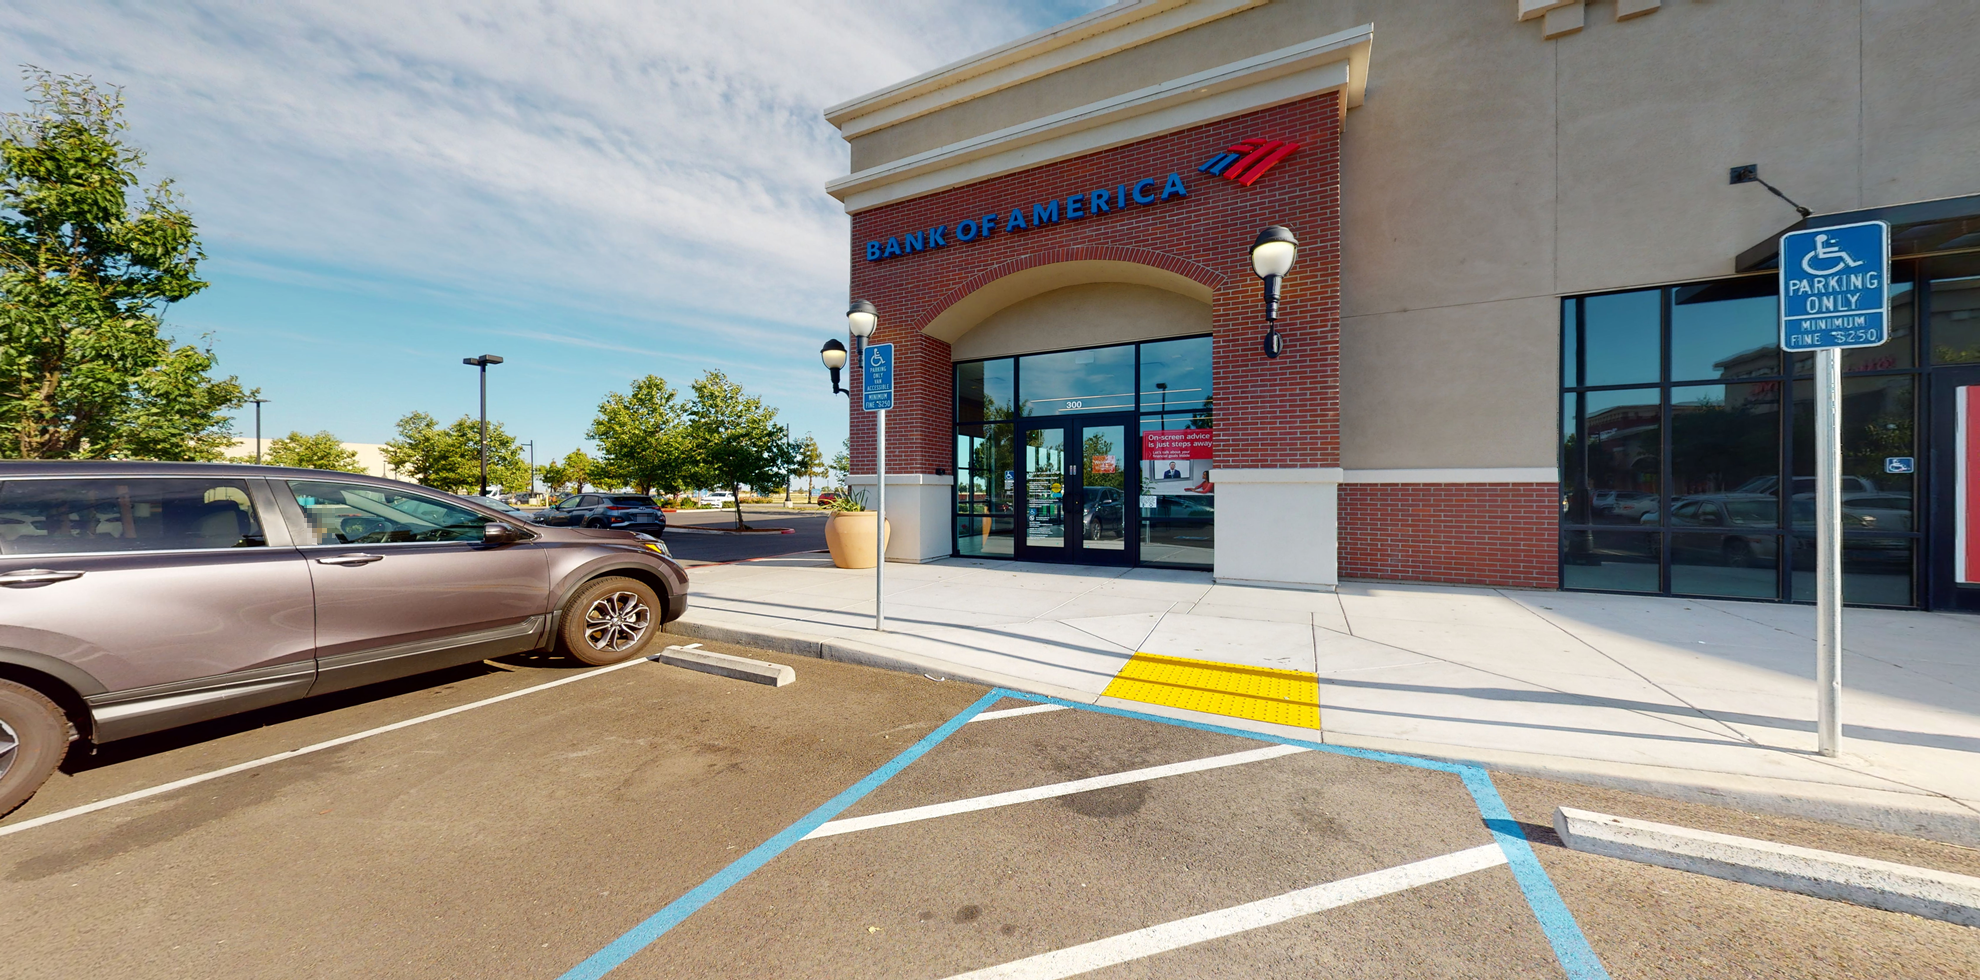 Bank of America Advanced Center with walk-up ATM   2061 Bronze Star Dr STE 300, Woodland, CA 95776